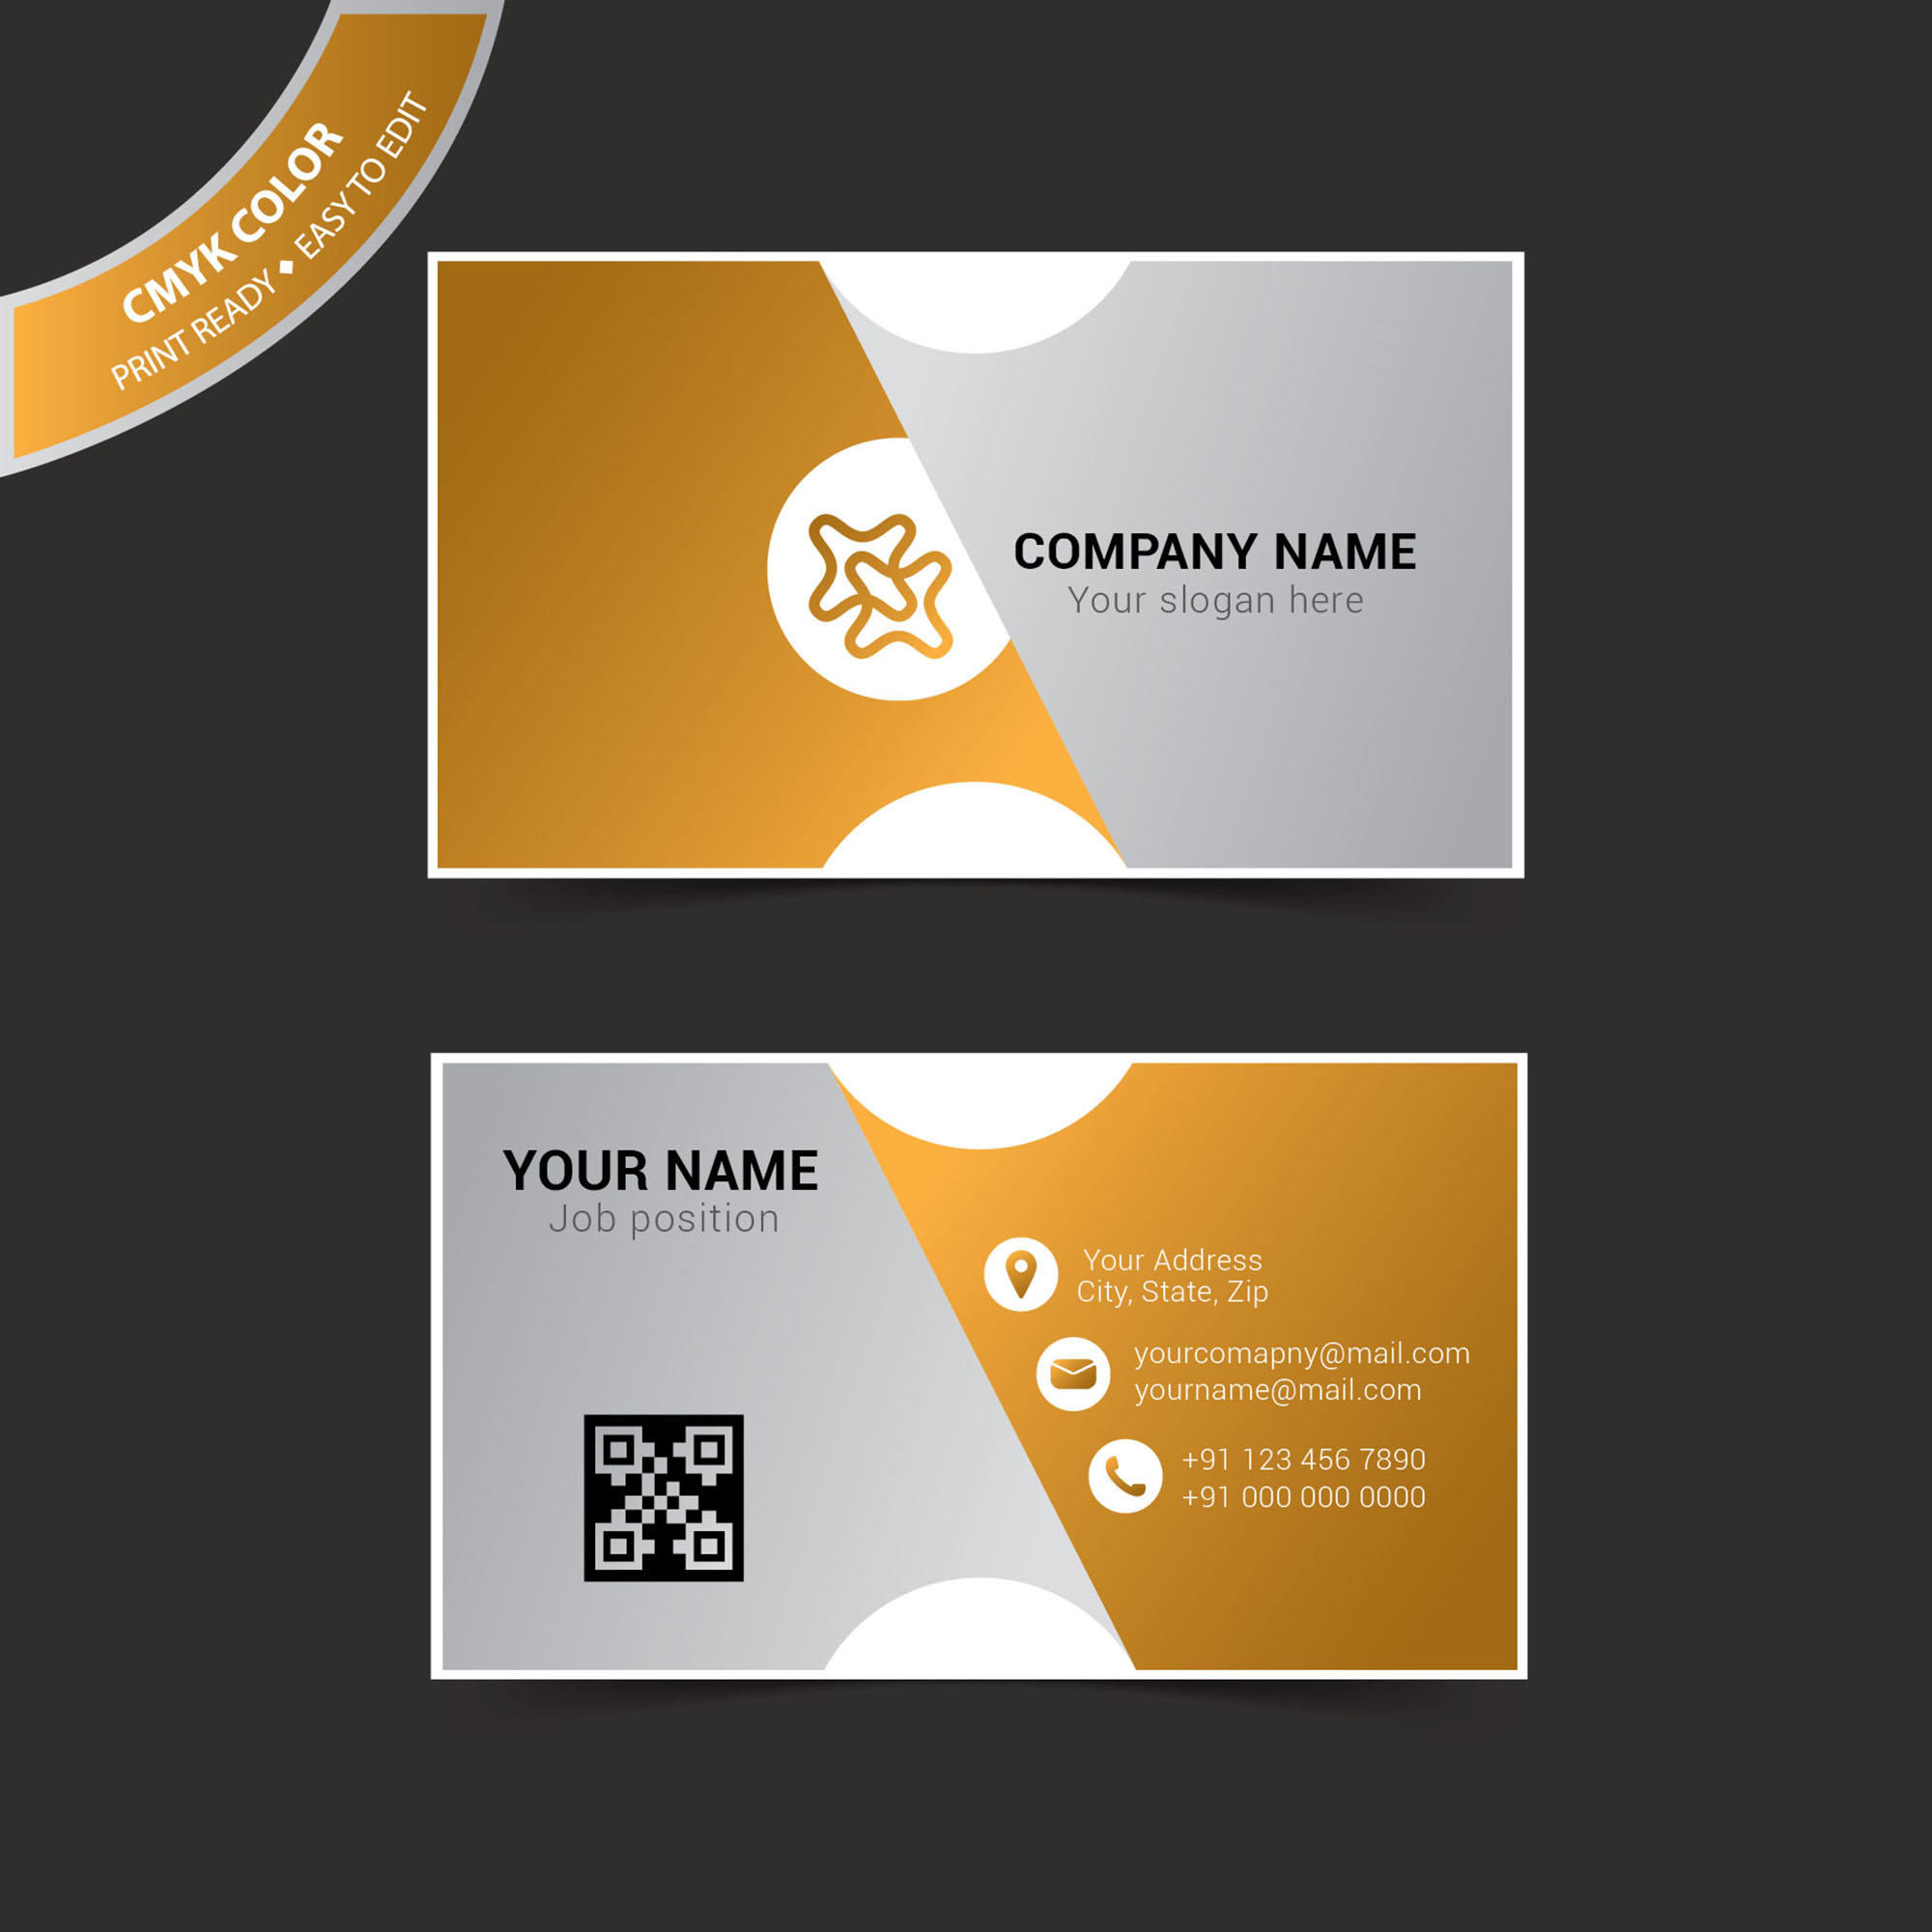 business card template illustrator free vector. Black Bedroom Furniture Sets. Home Design Ideas